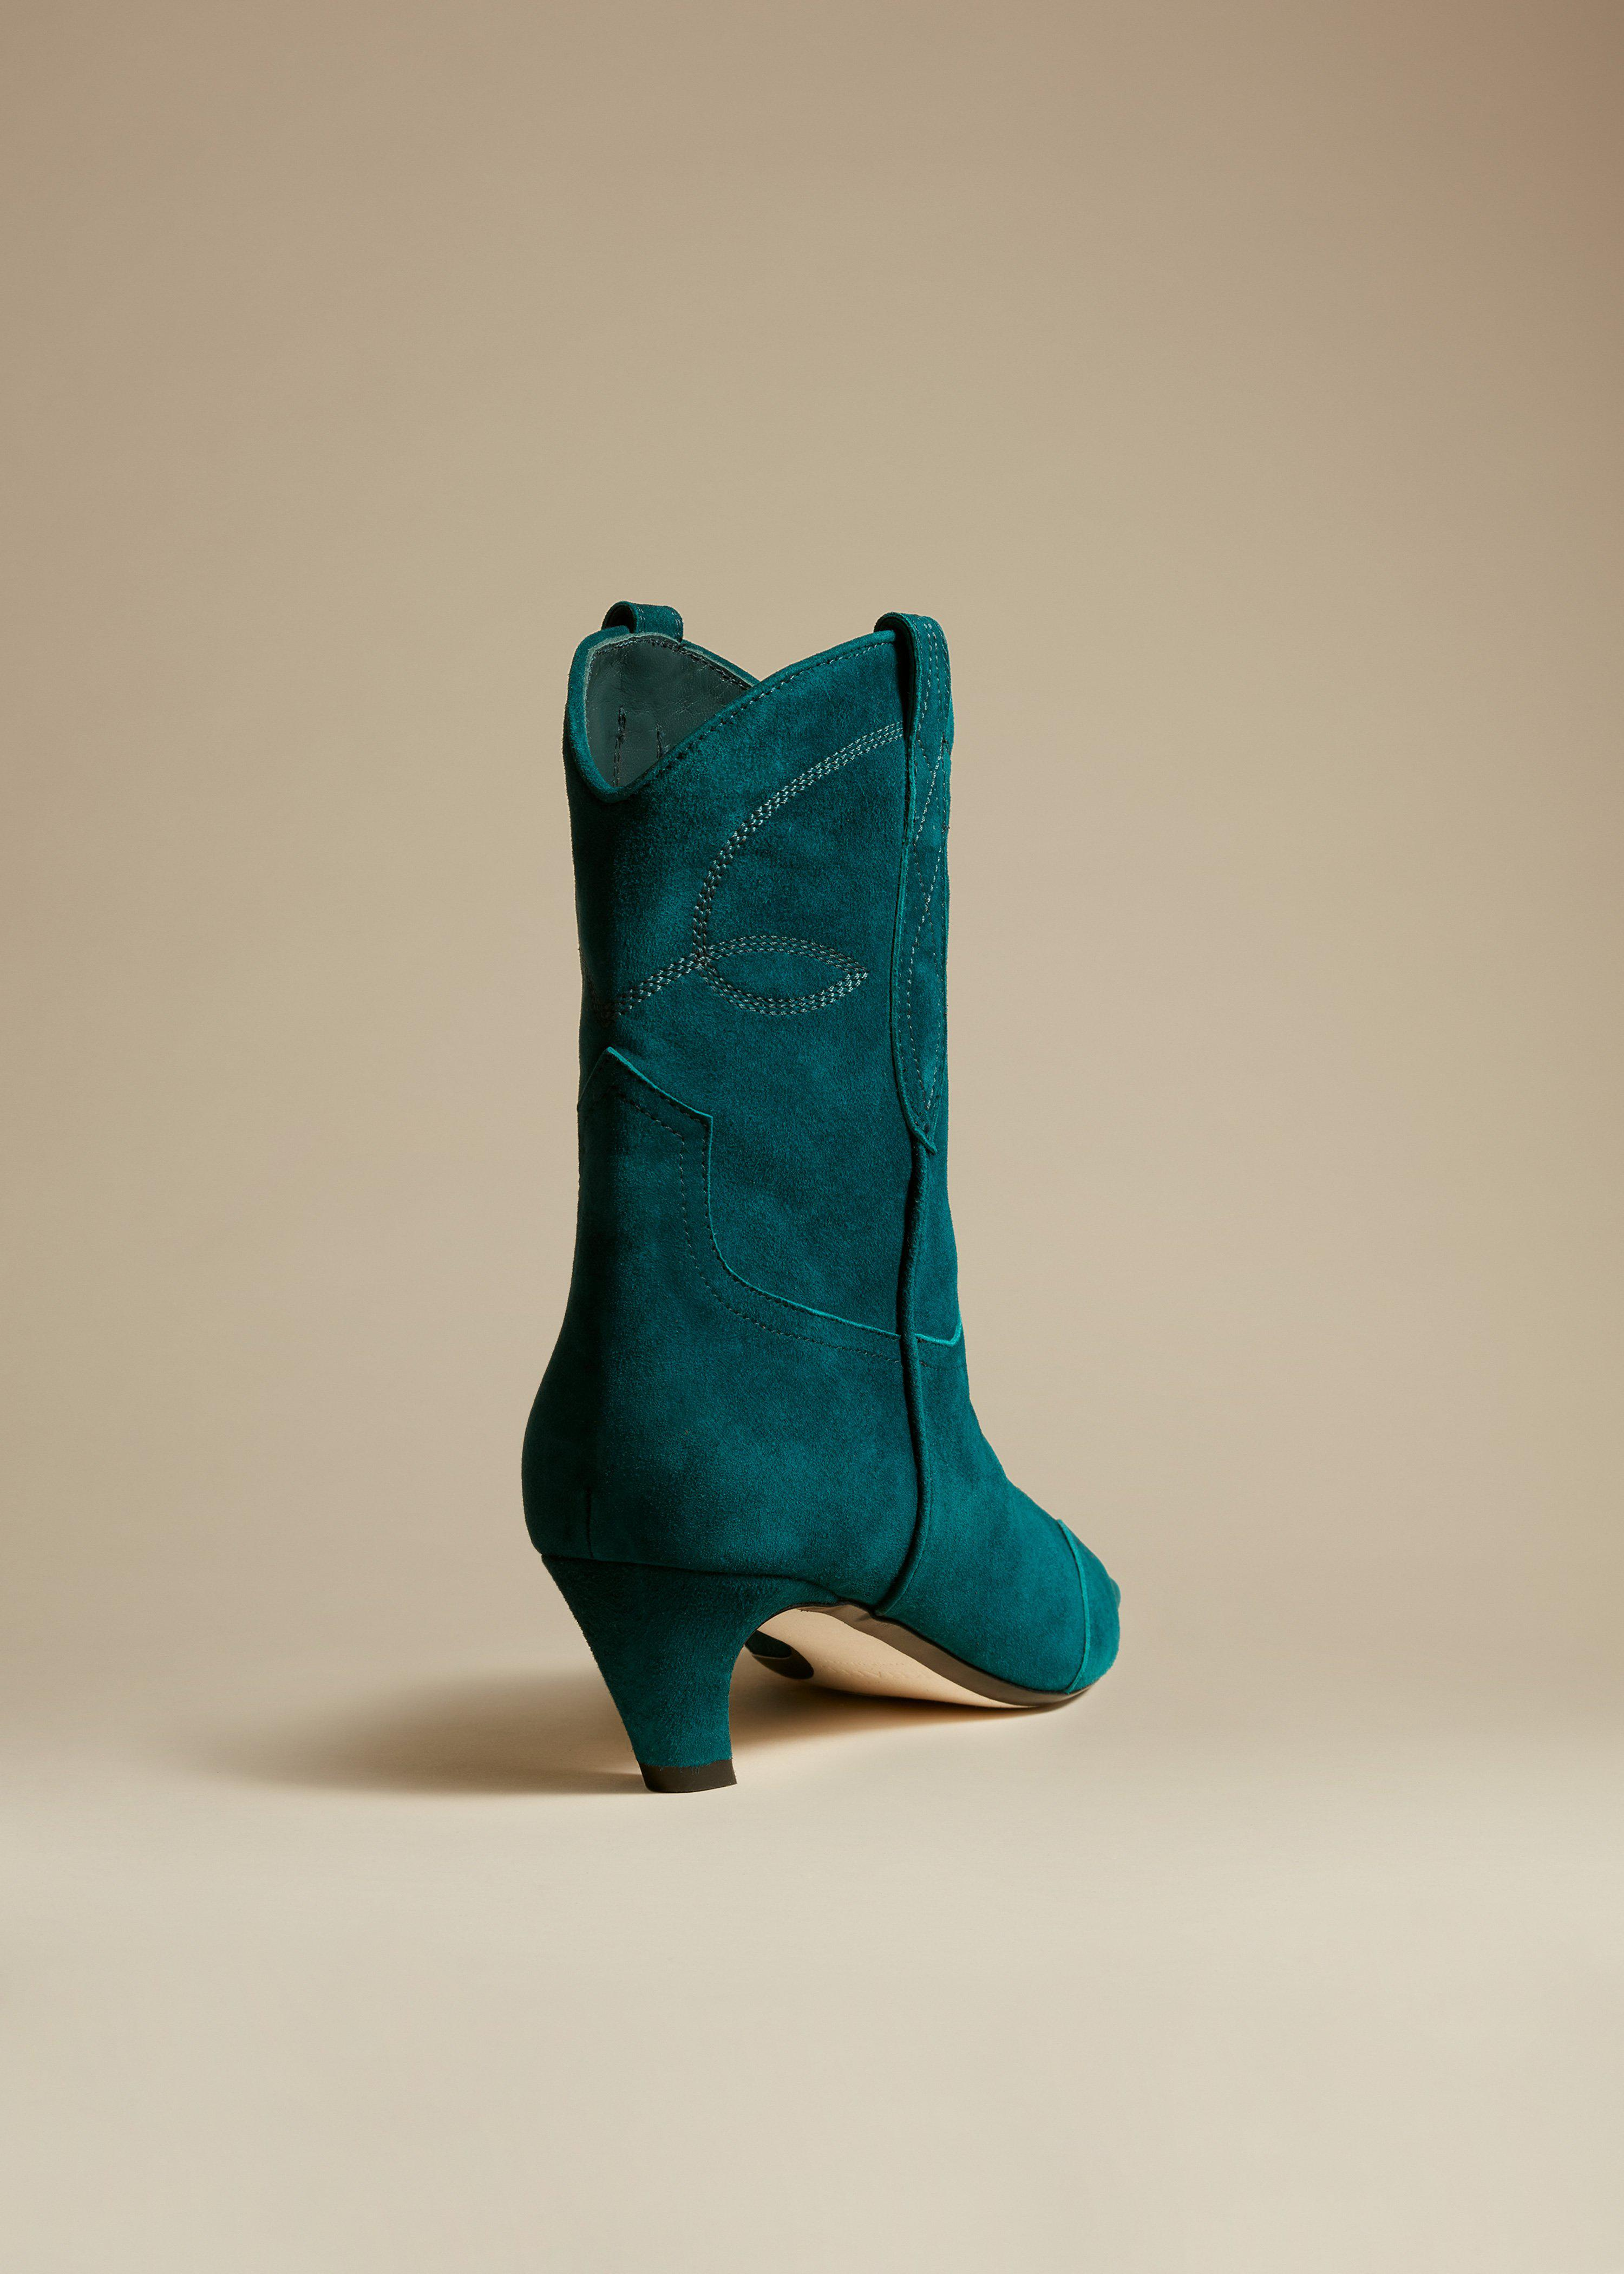 The Dallas Ankle Boot in Dark Teal Suede 2